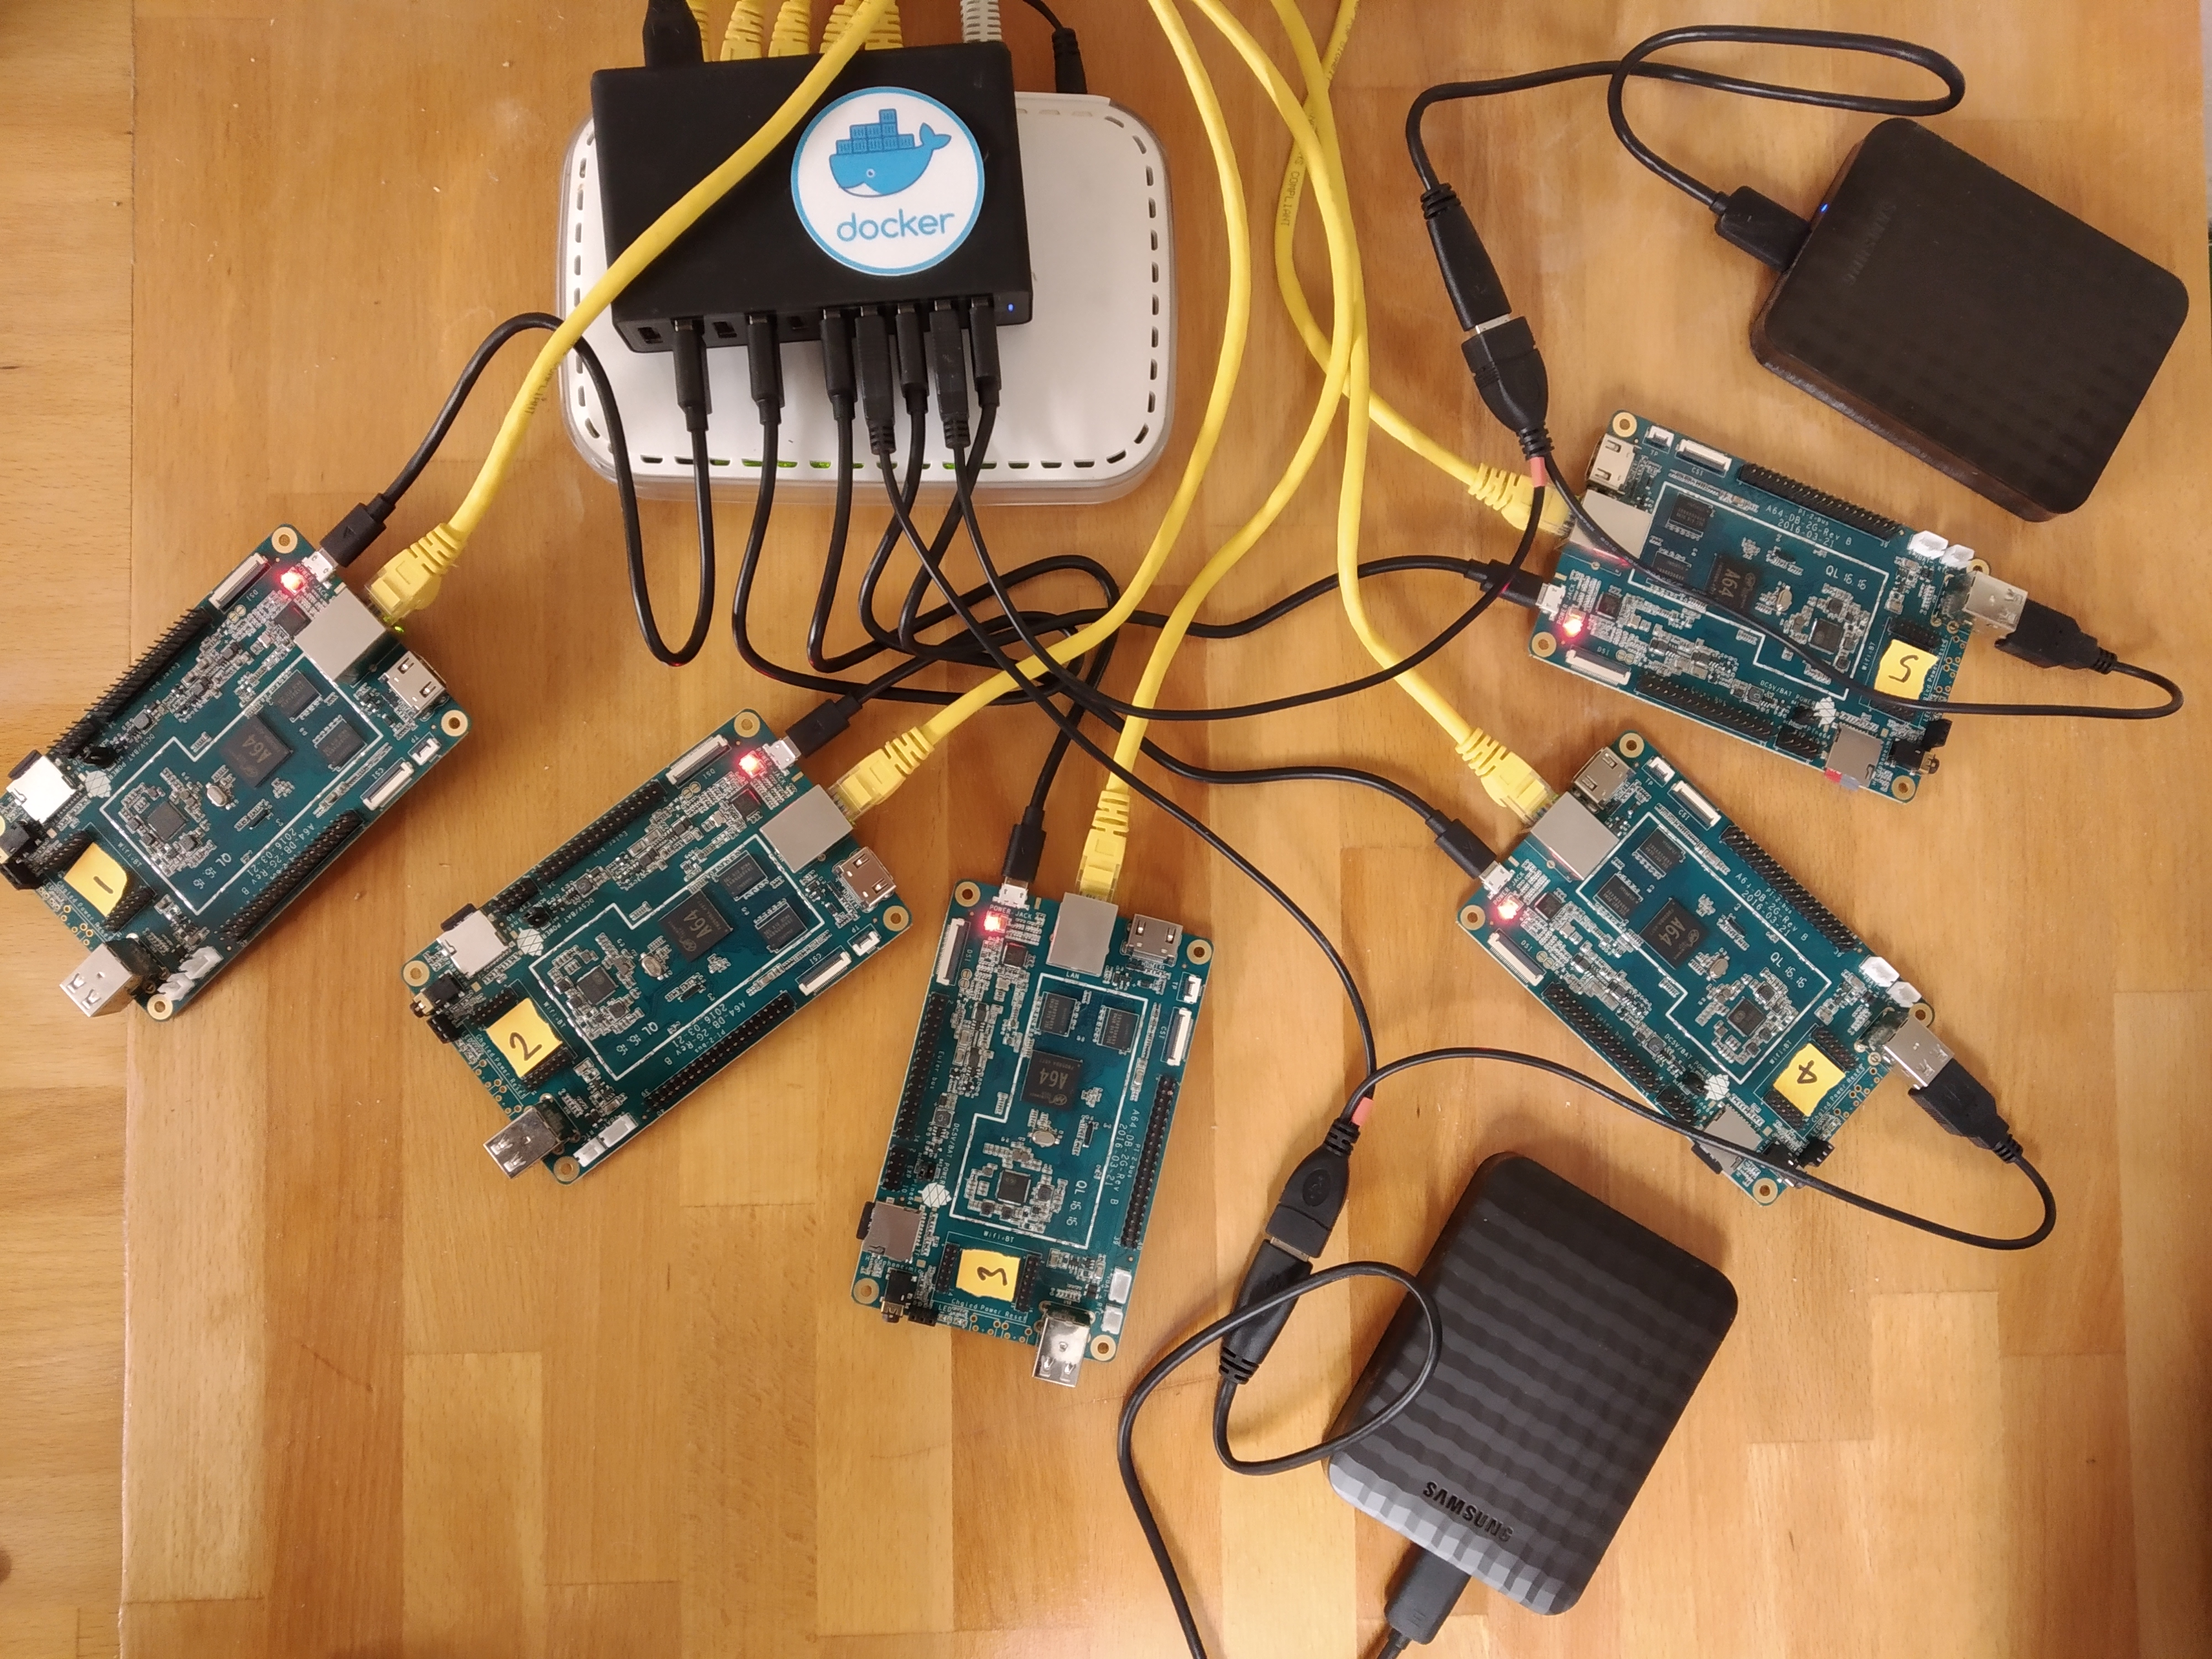 Some ARM64 boards joined into a Docker Swarm